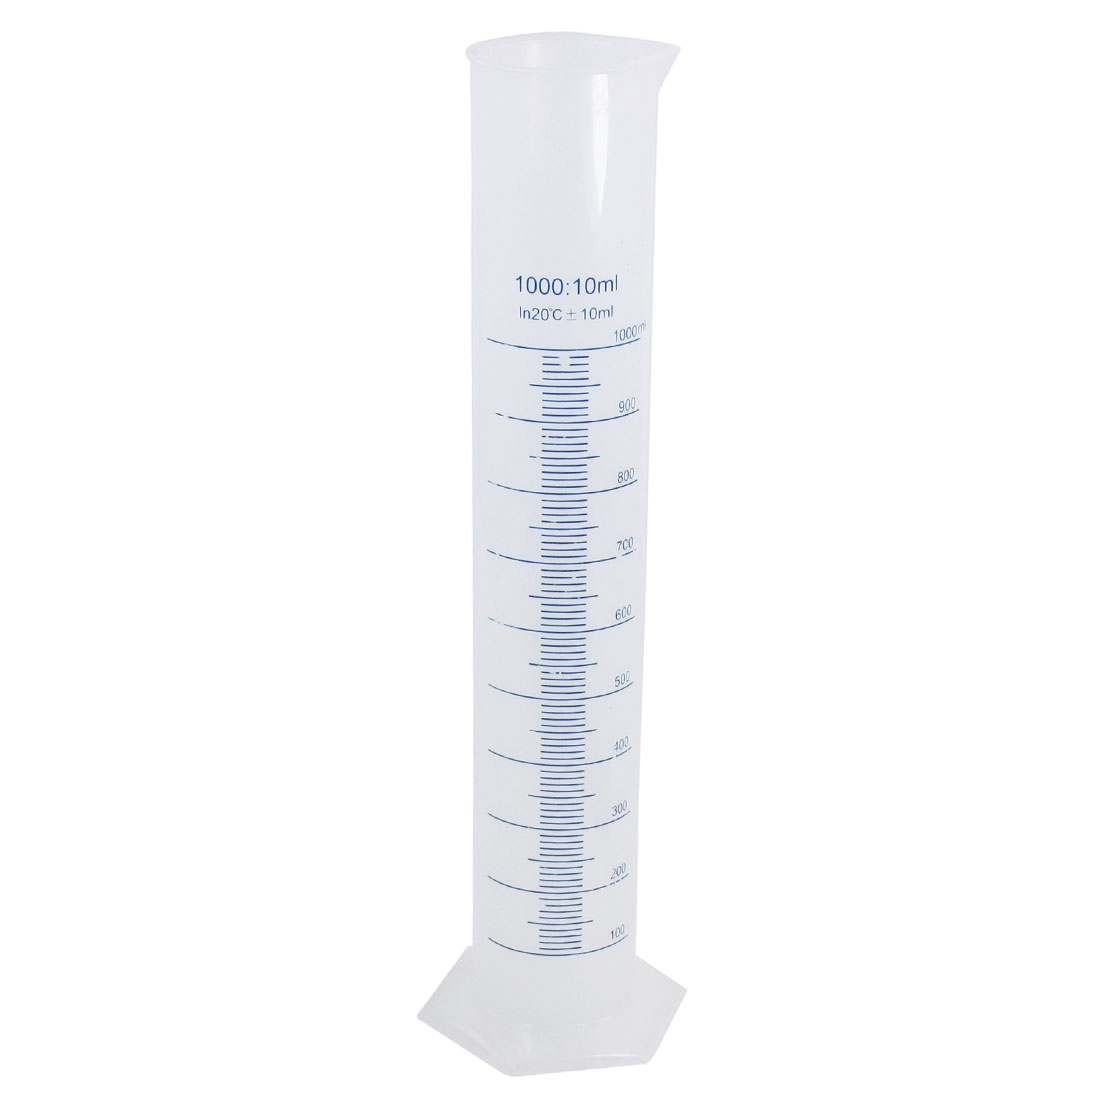 Lab Laboratory Test 41cm Height 1000ml Transparent Plastic Graduated Cylinder Measuring Cup 10ml Tolerance